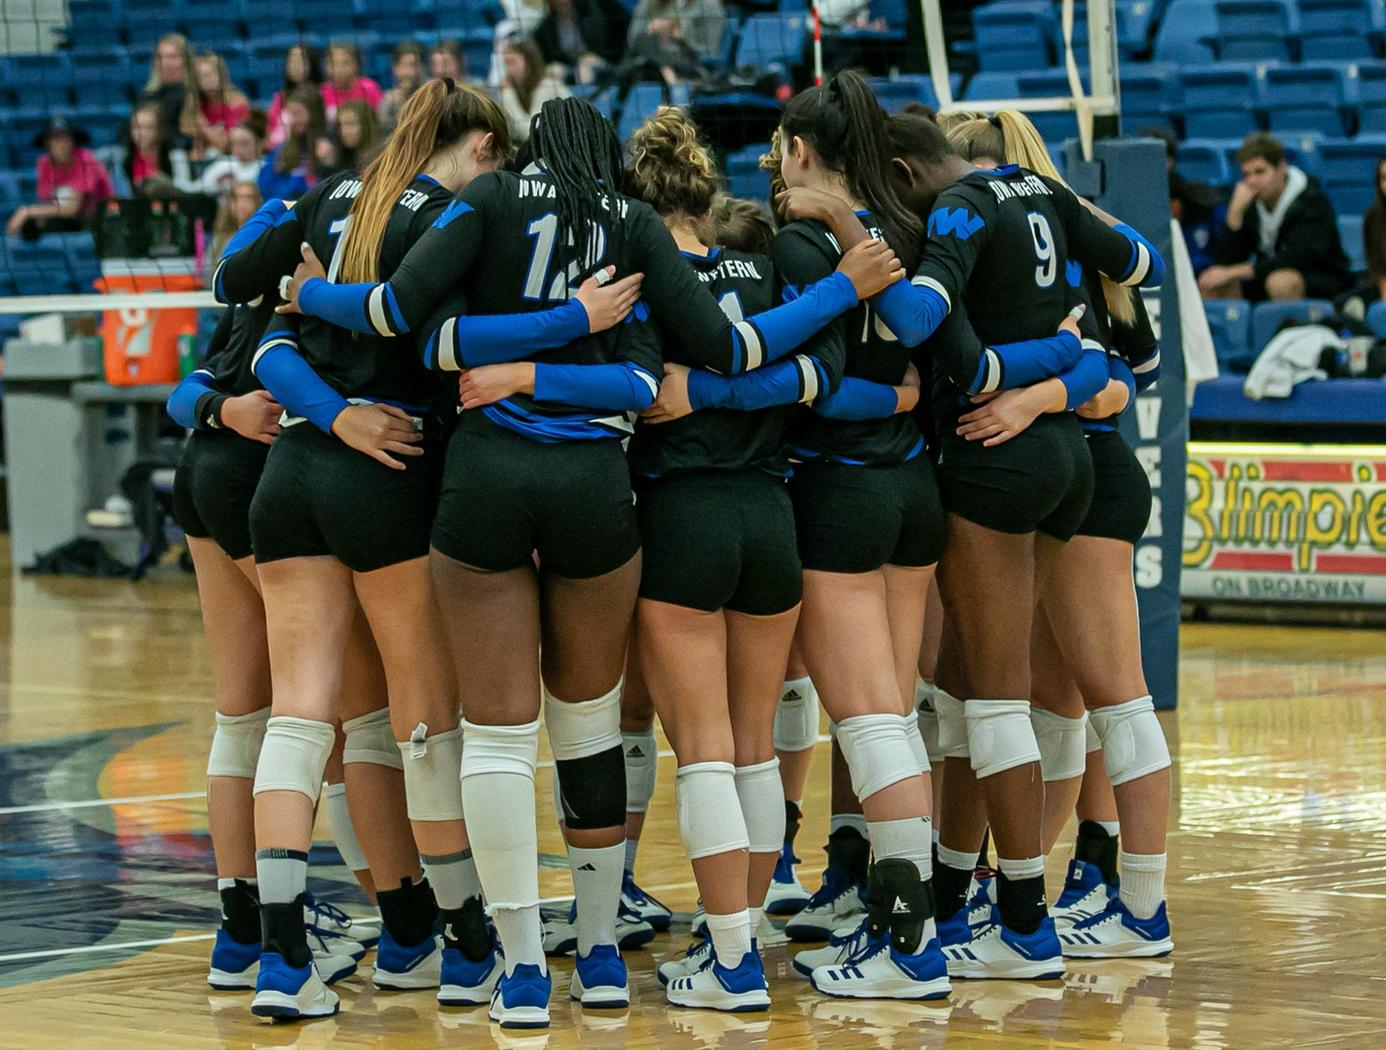 Champaign Tastes Like a Sweep for Reivers in Final Weekend